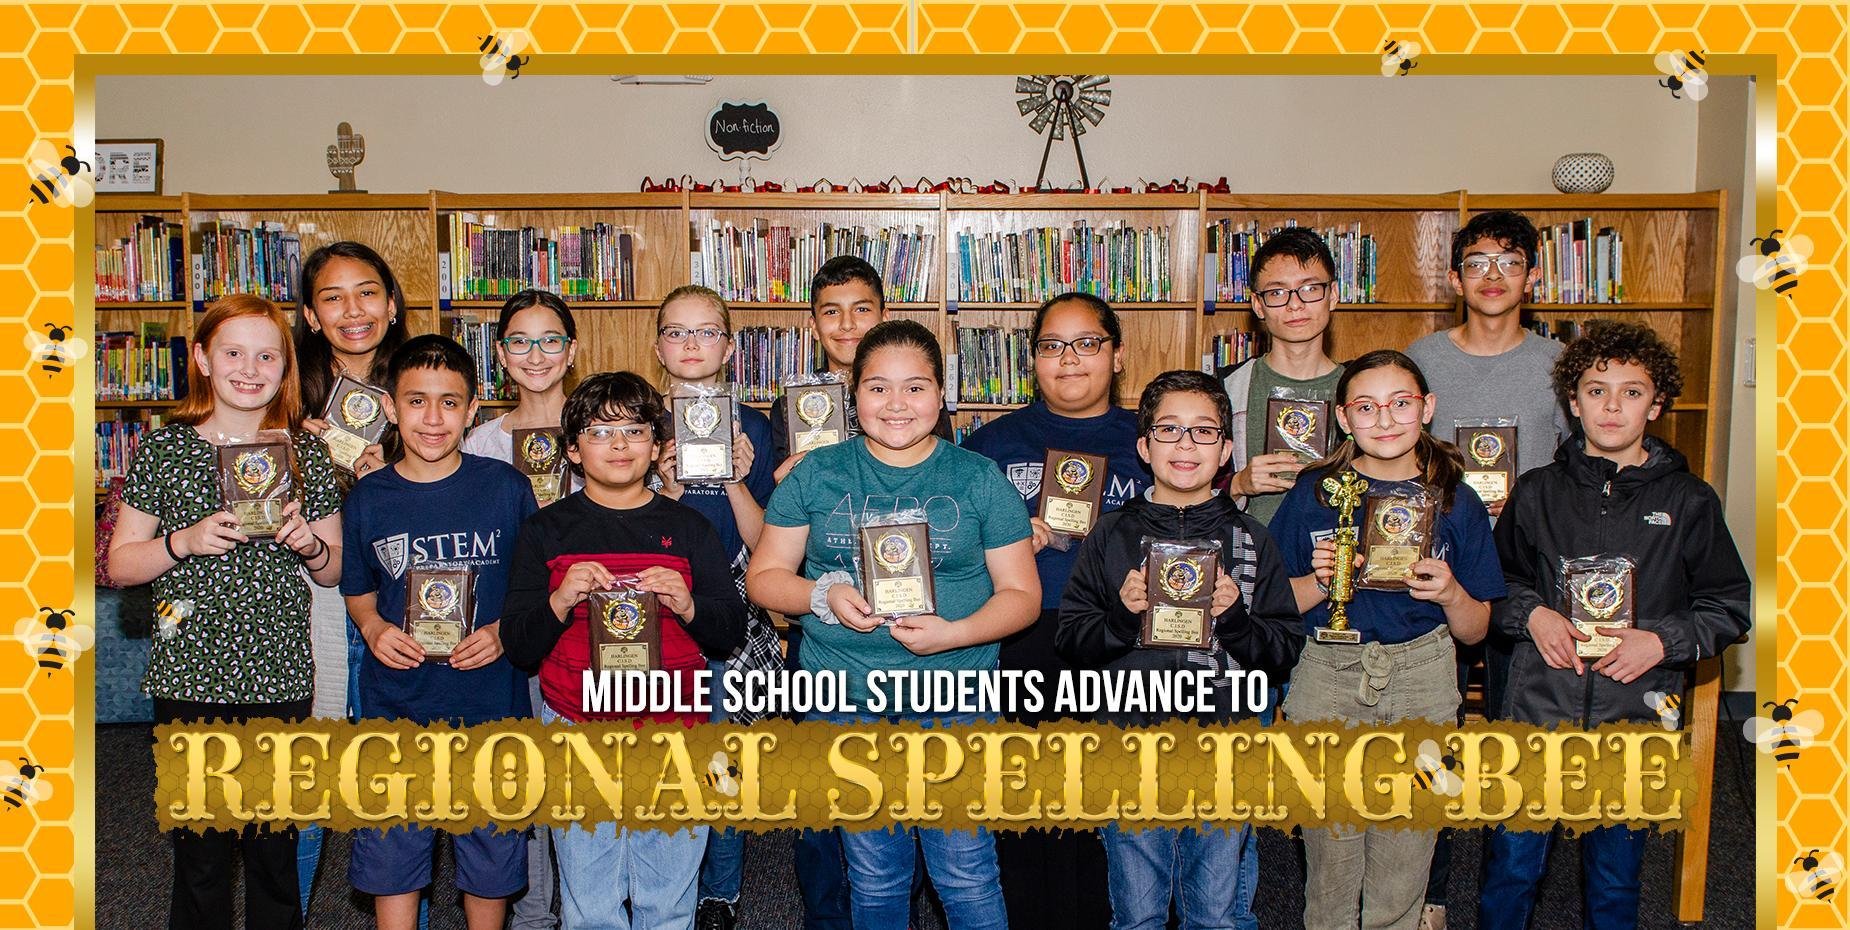 Middle school students advance to regional spelling bee